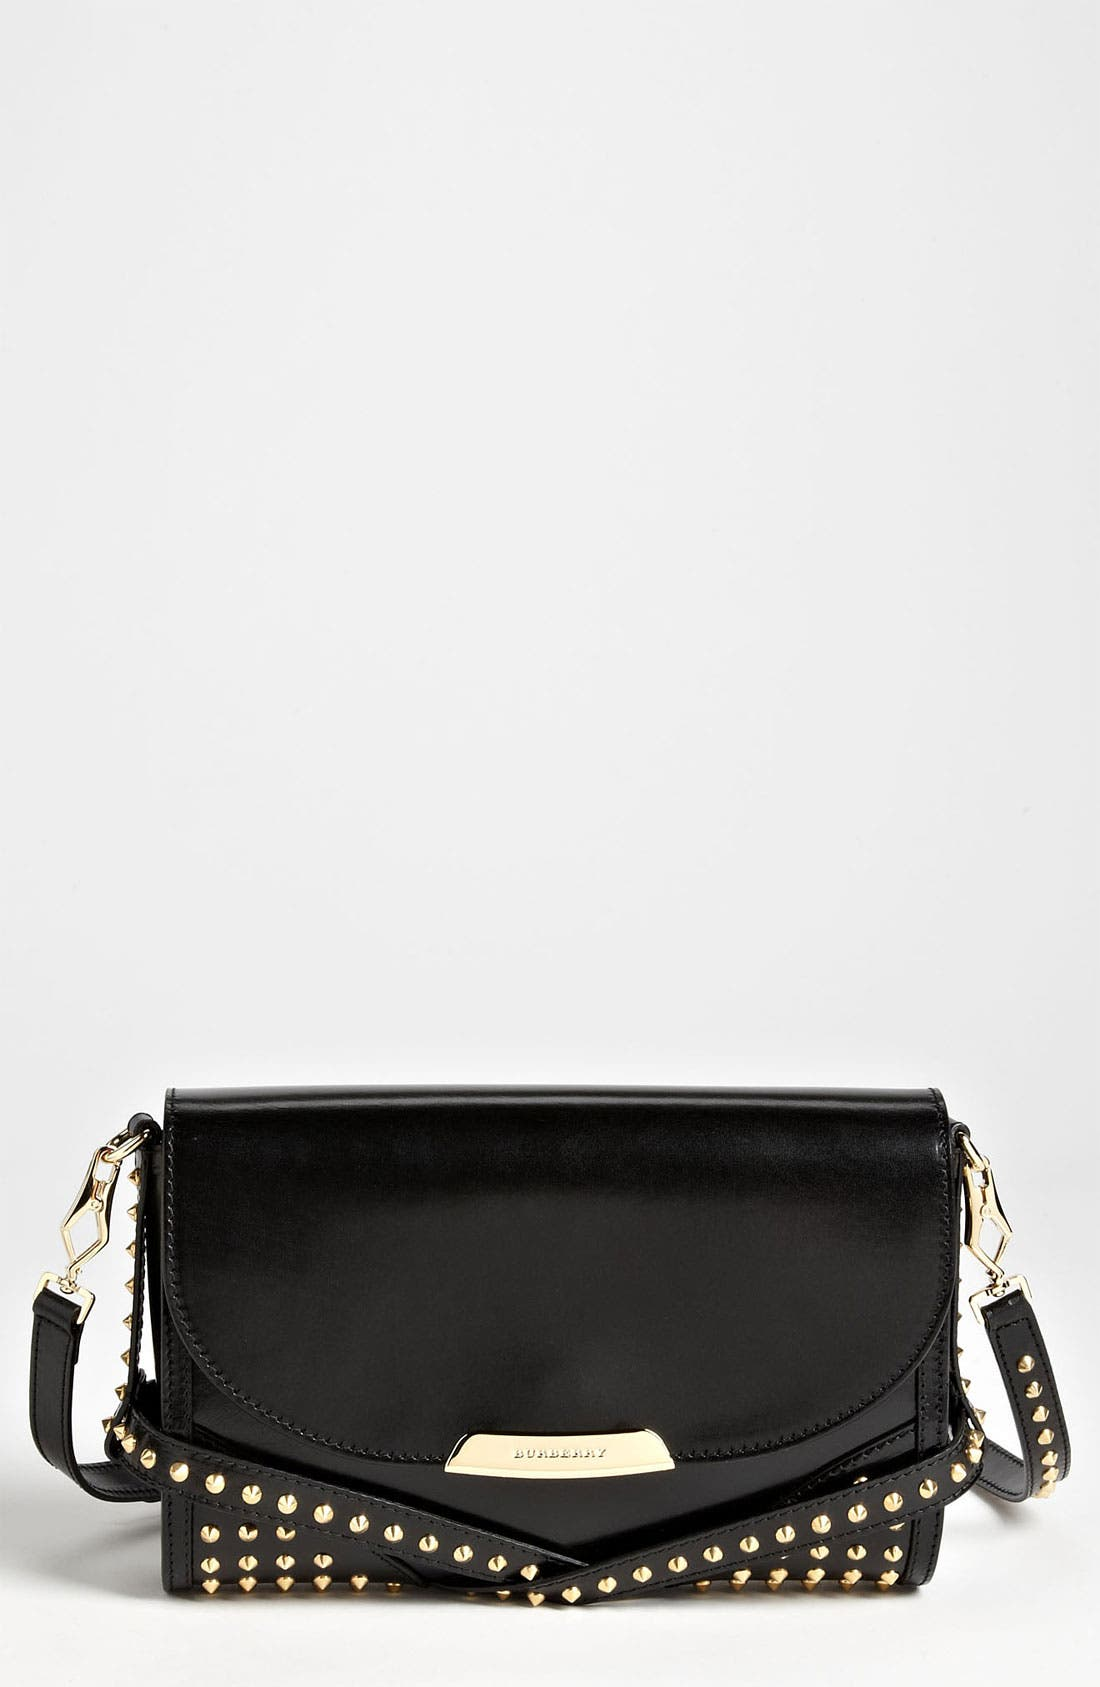 Main Image - Burberry 'Bridle Studs' Leather Crossbody Bag